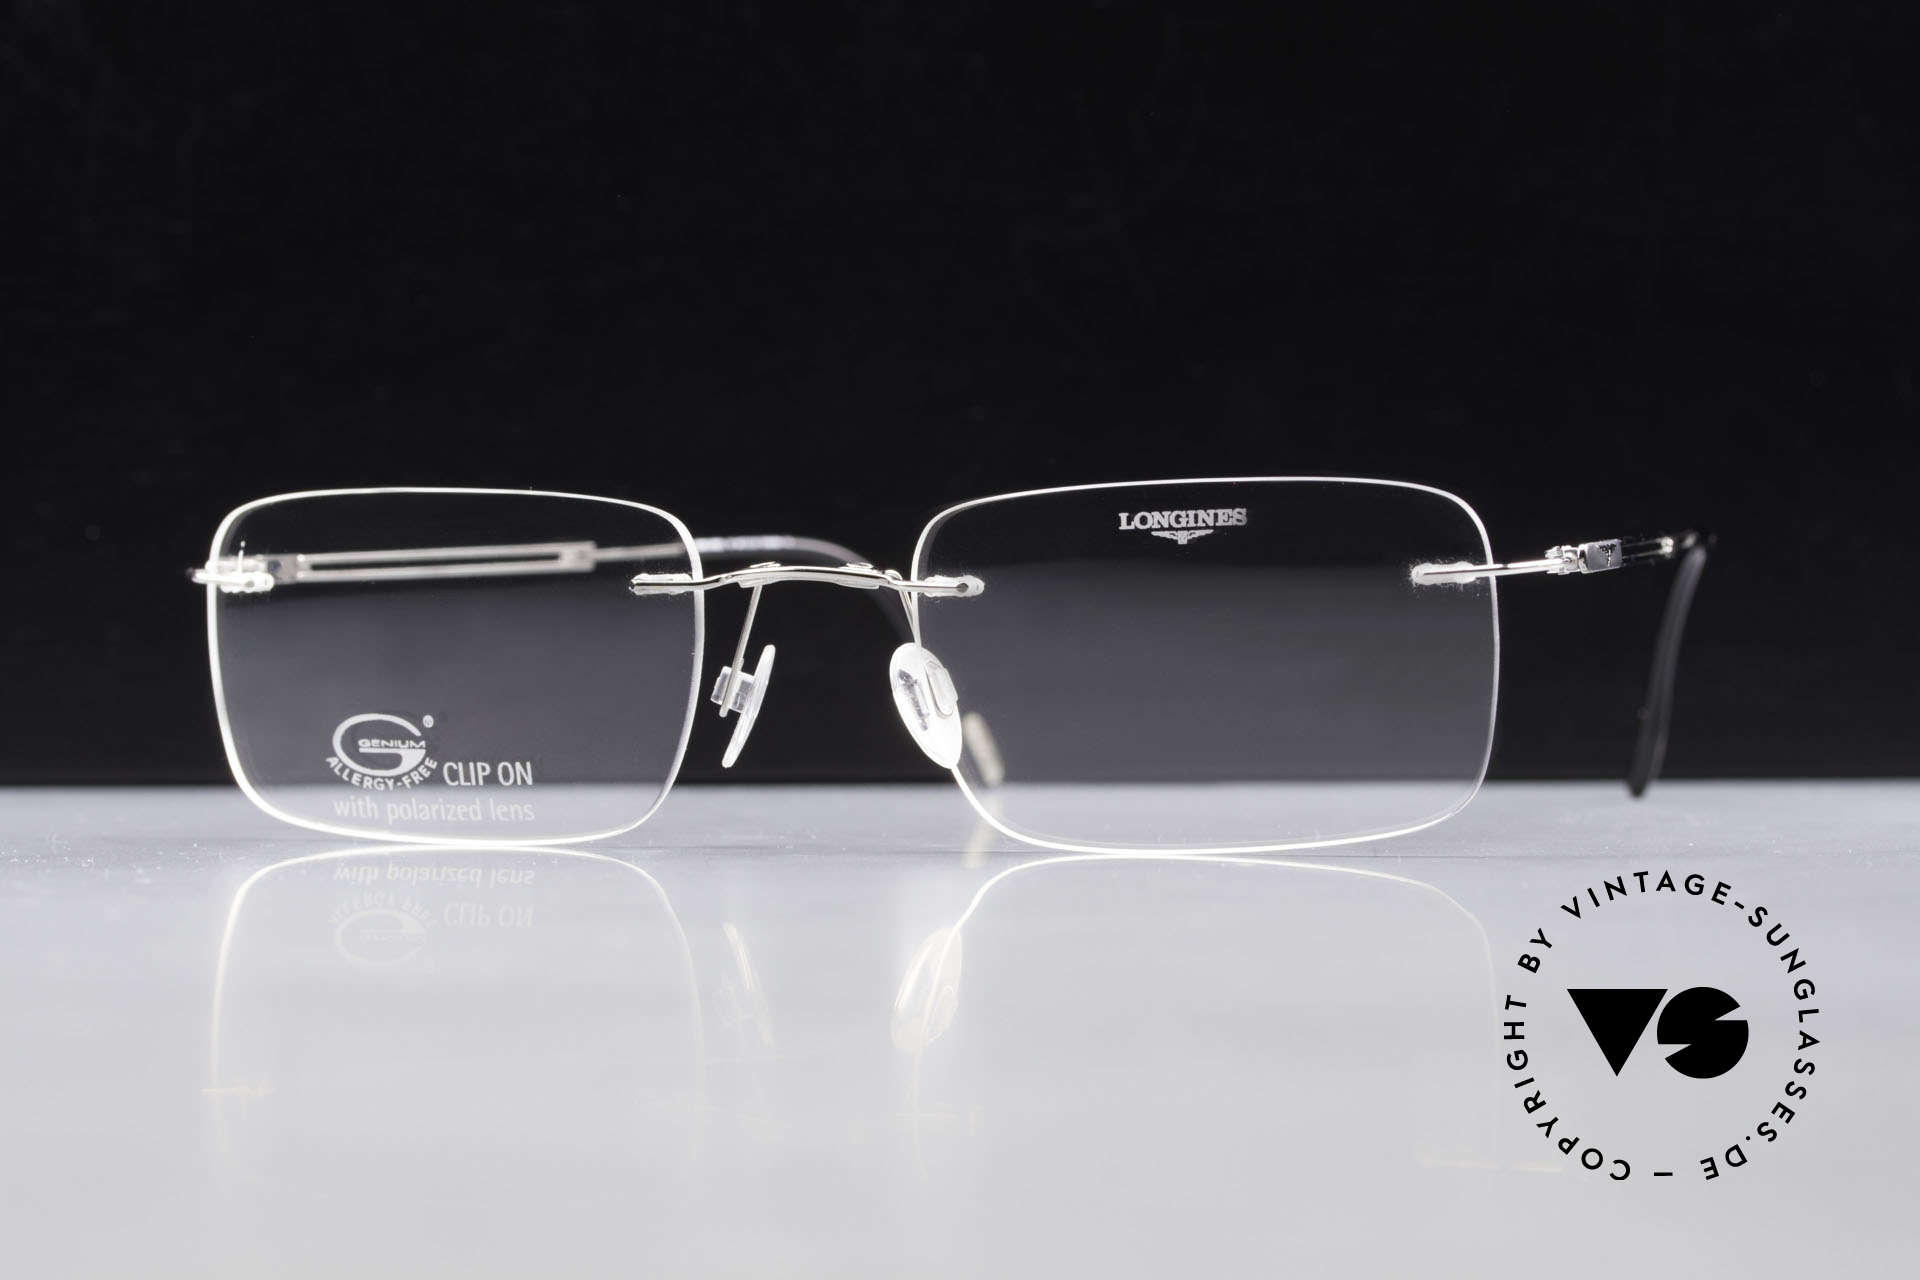 Longines 4367 Rimless Specs Polarized Clip, Clip-On with green polarized lenses; 100% UV protect., Made for Men